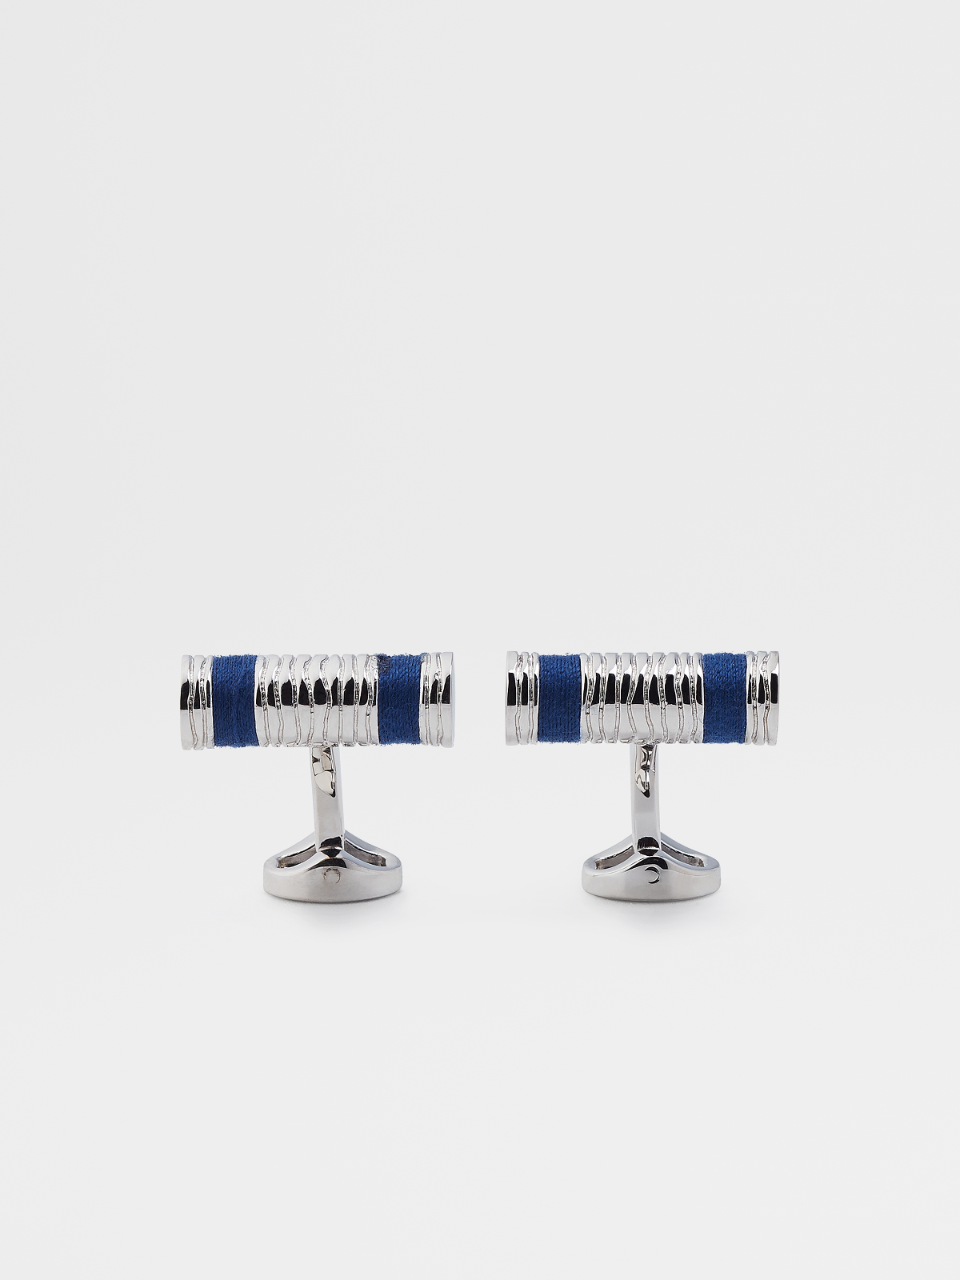 Wrapped Thread Cufflinks